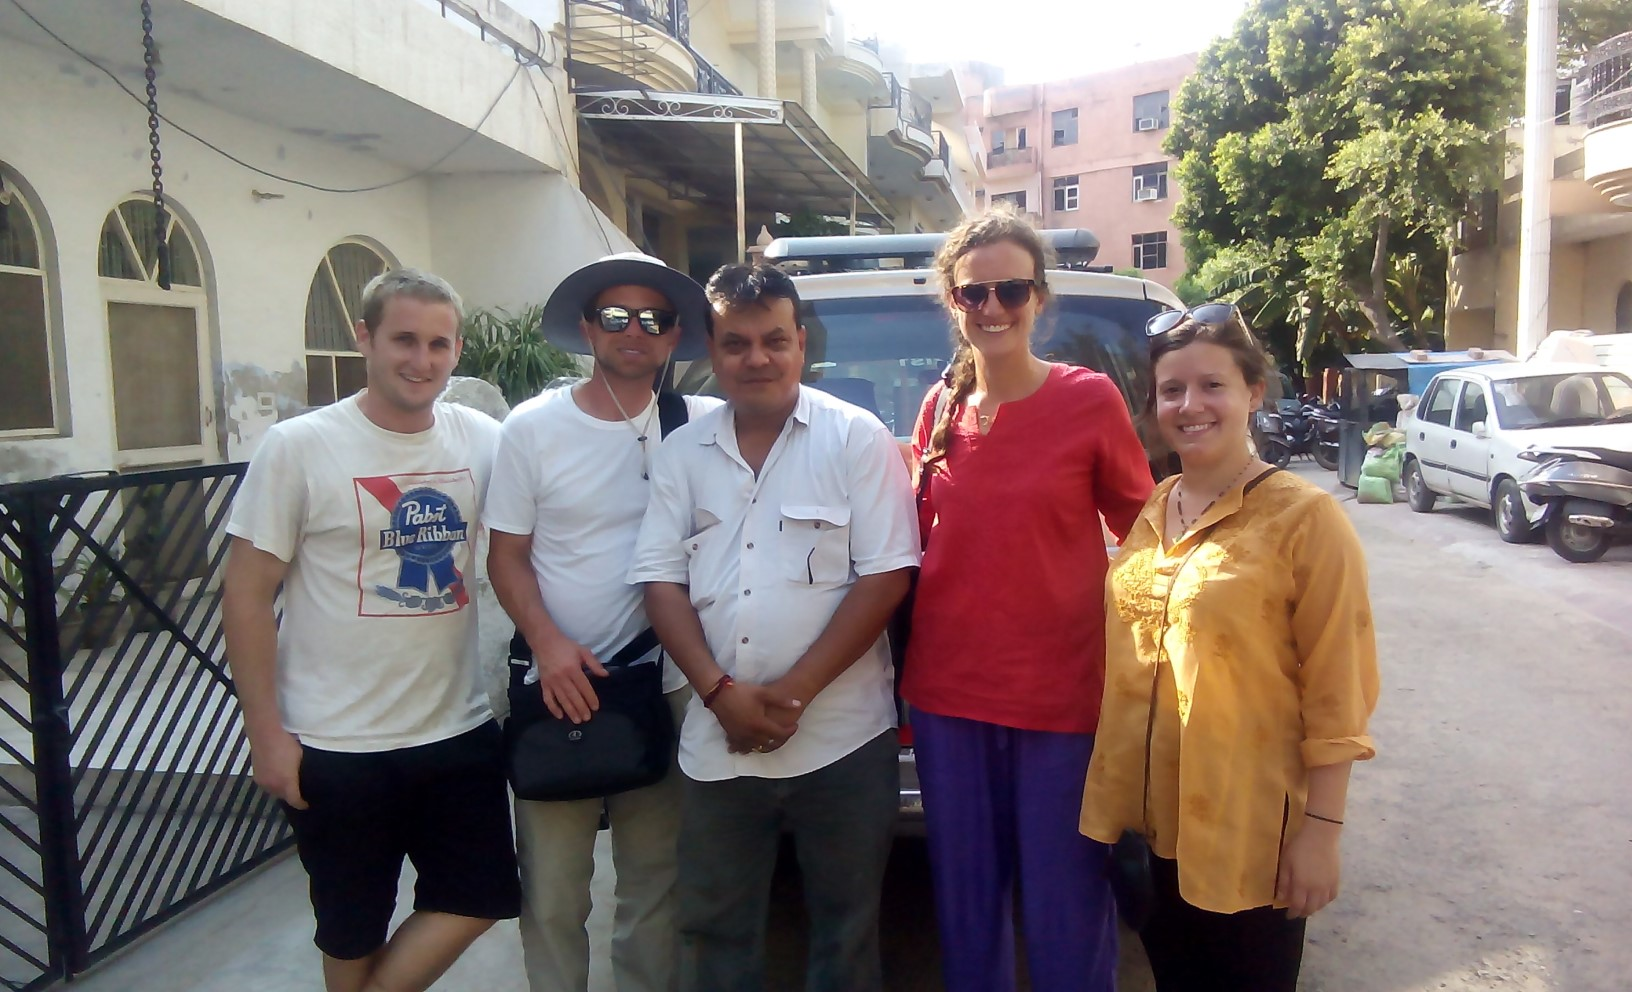 Rajasthan Tour From Delhi (By Car) - Rajasthan Tour Hire Car and Driver From Delhi